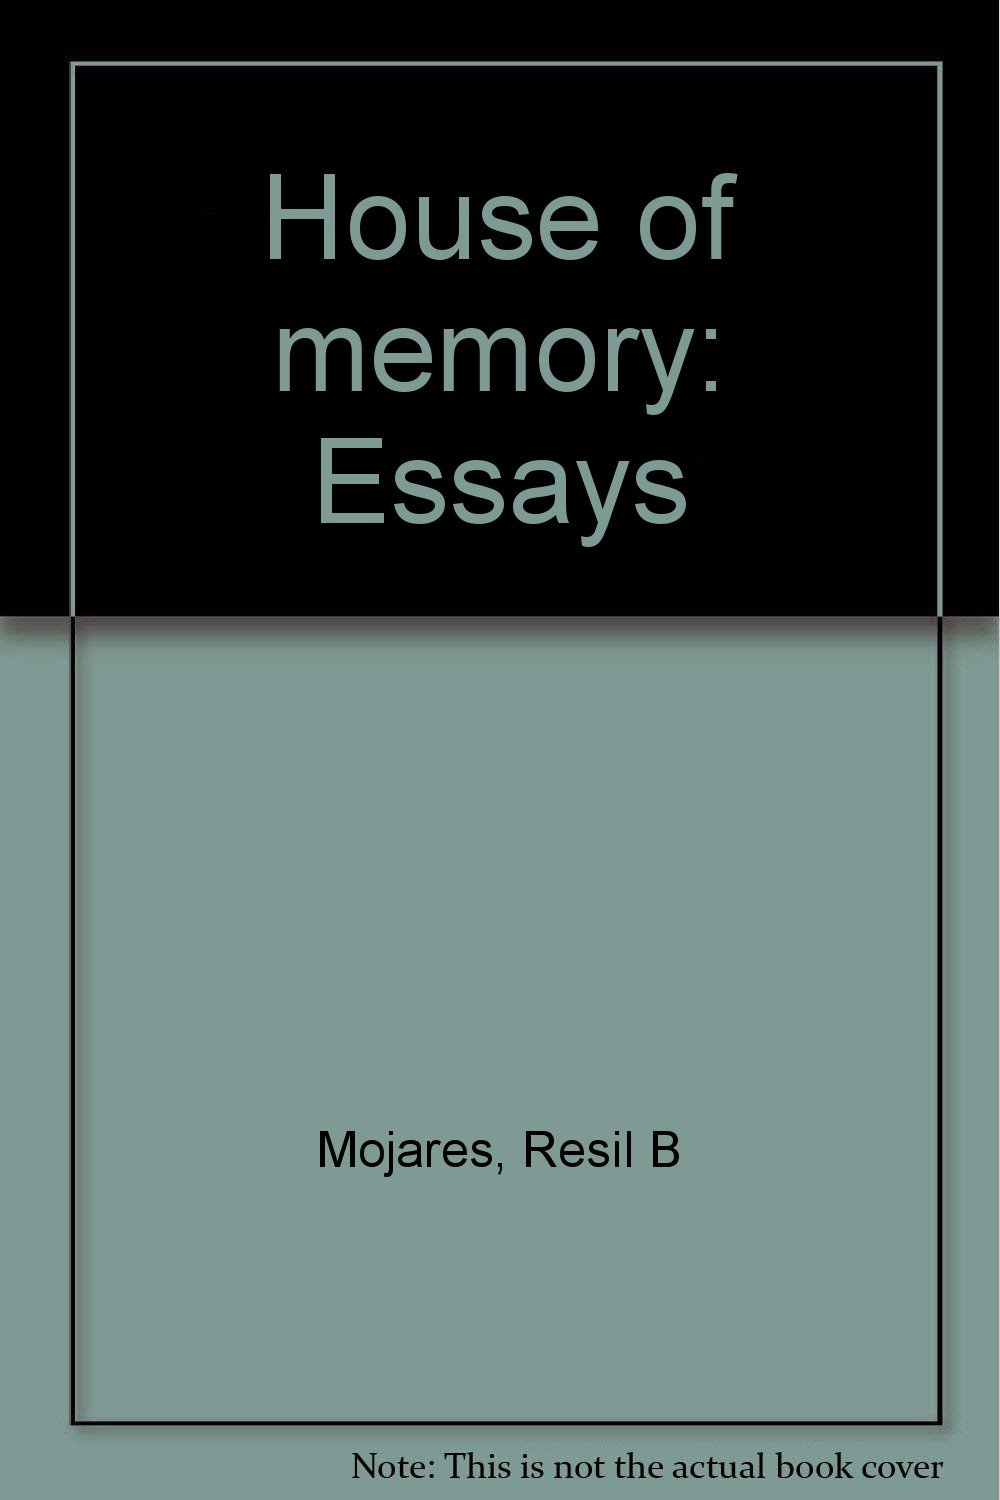 house of memory essays resil b mojares 9789712706097  house of memory essays resil b mojares 9789712706097 com books